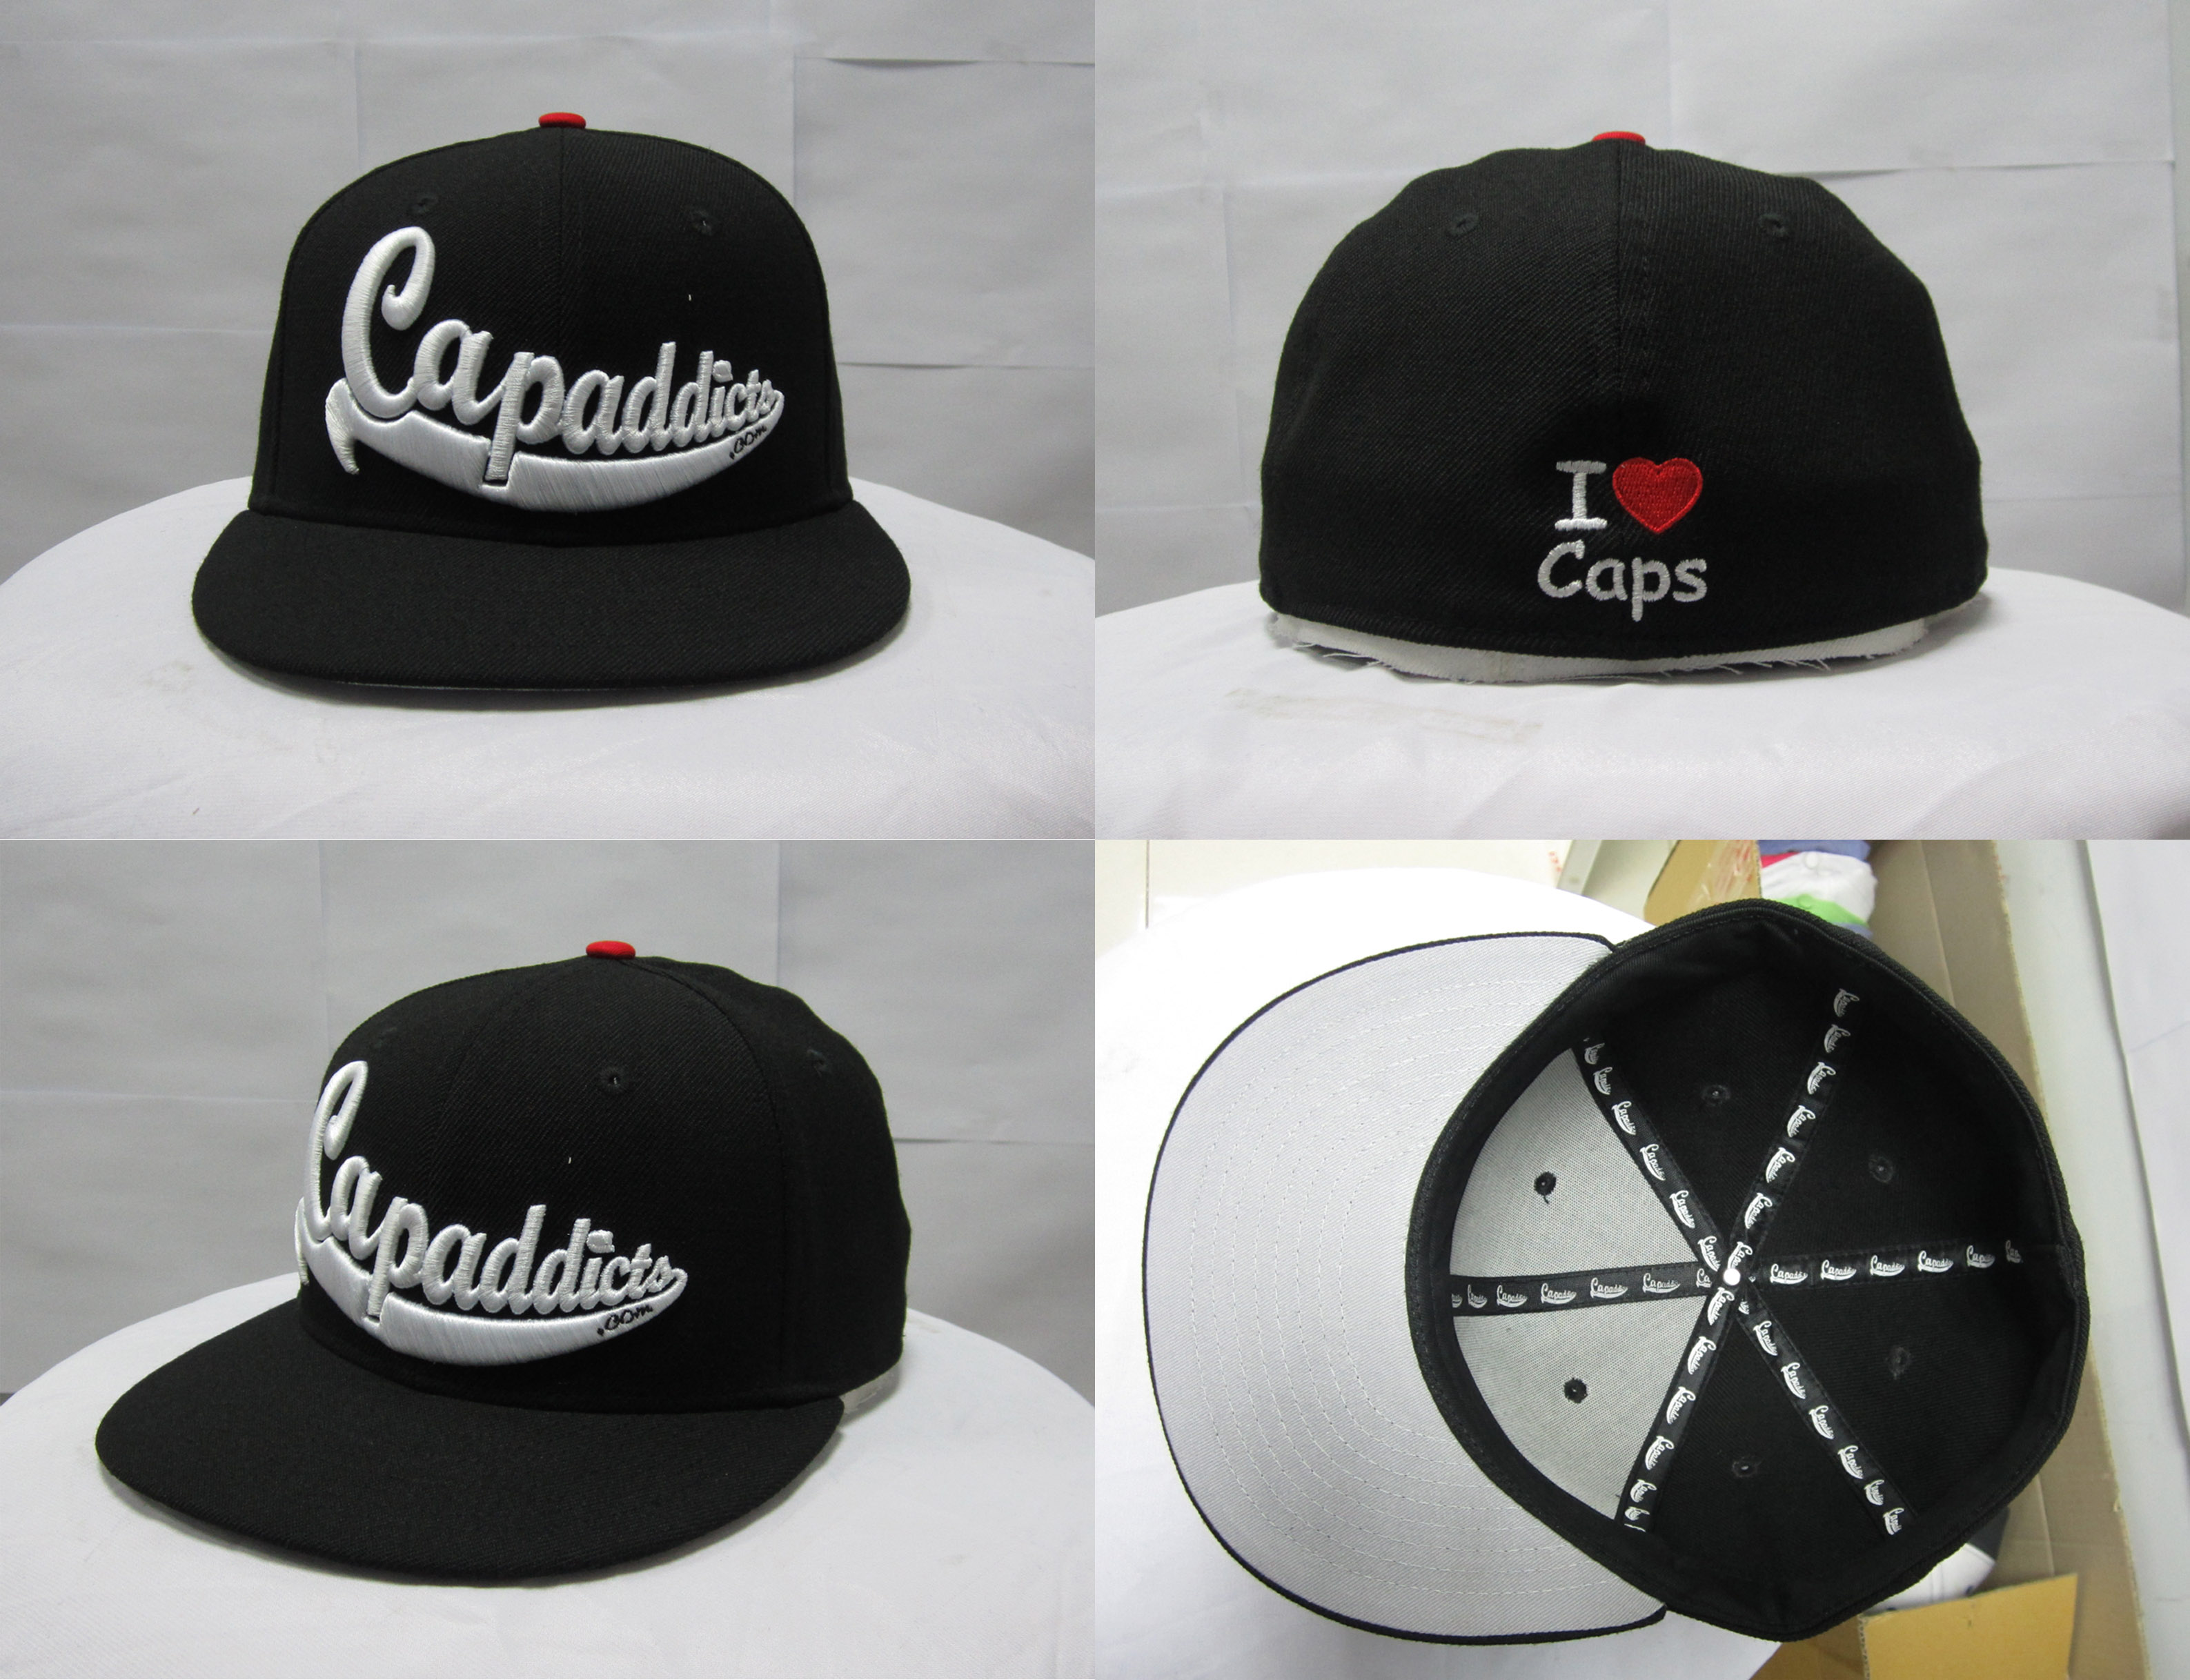 capaddicts-i-love-caps-fitted-overview